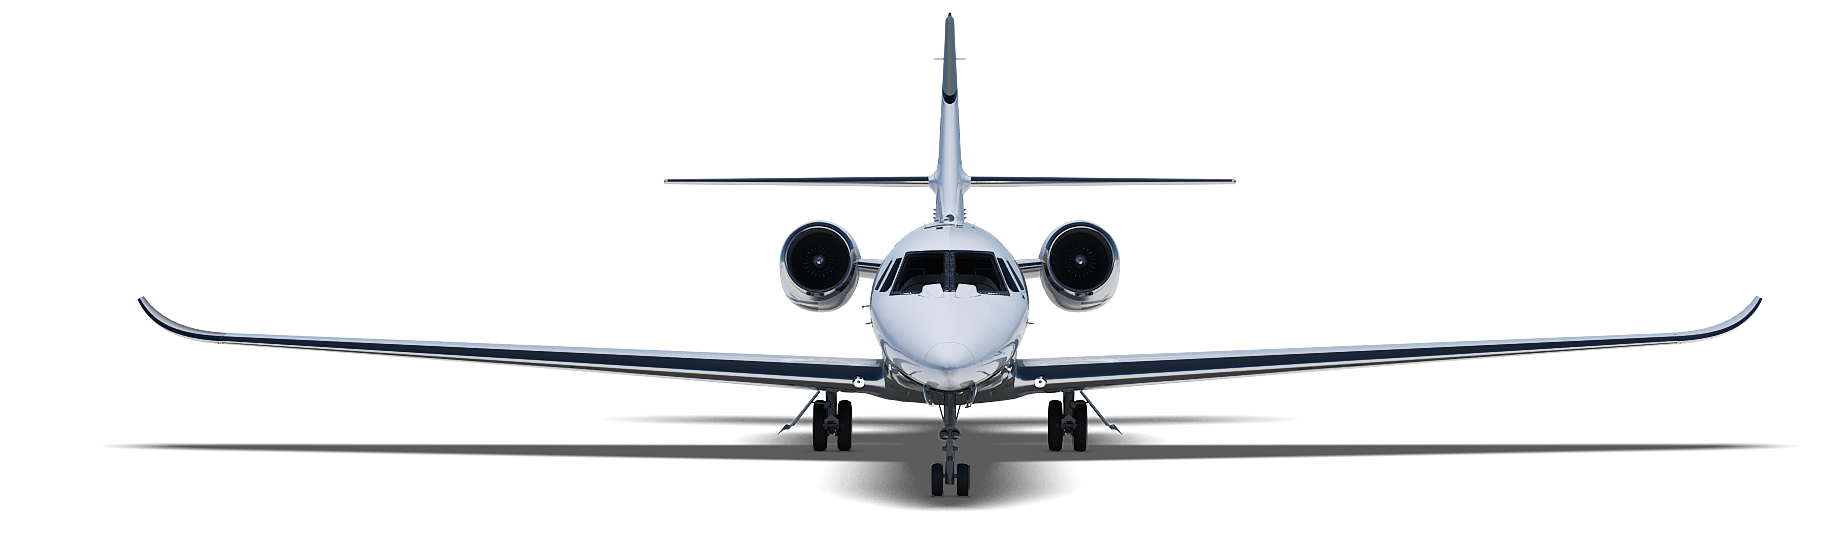 Cessna Citation X Business Jet 3D Model Obj 3ds Fbx Lwo Lw Lws